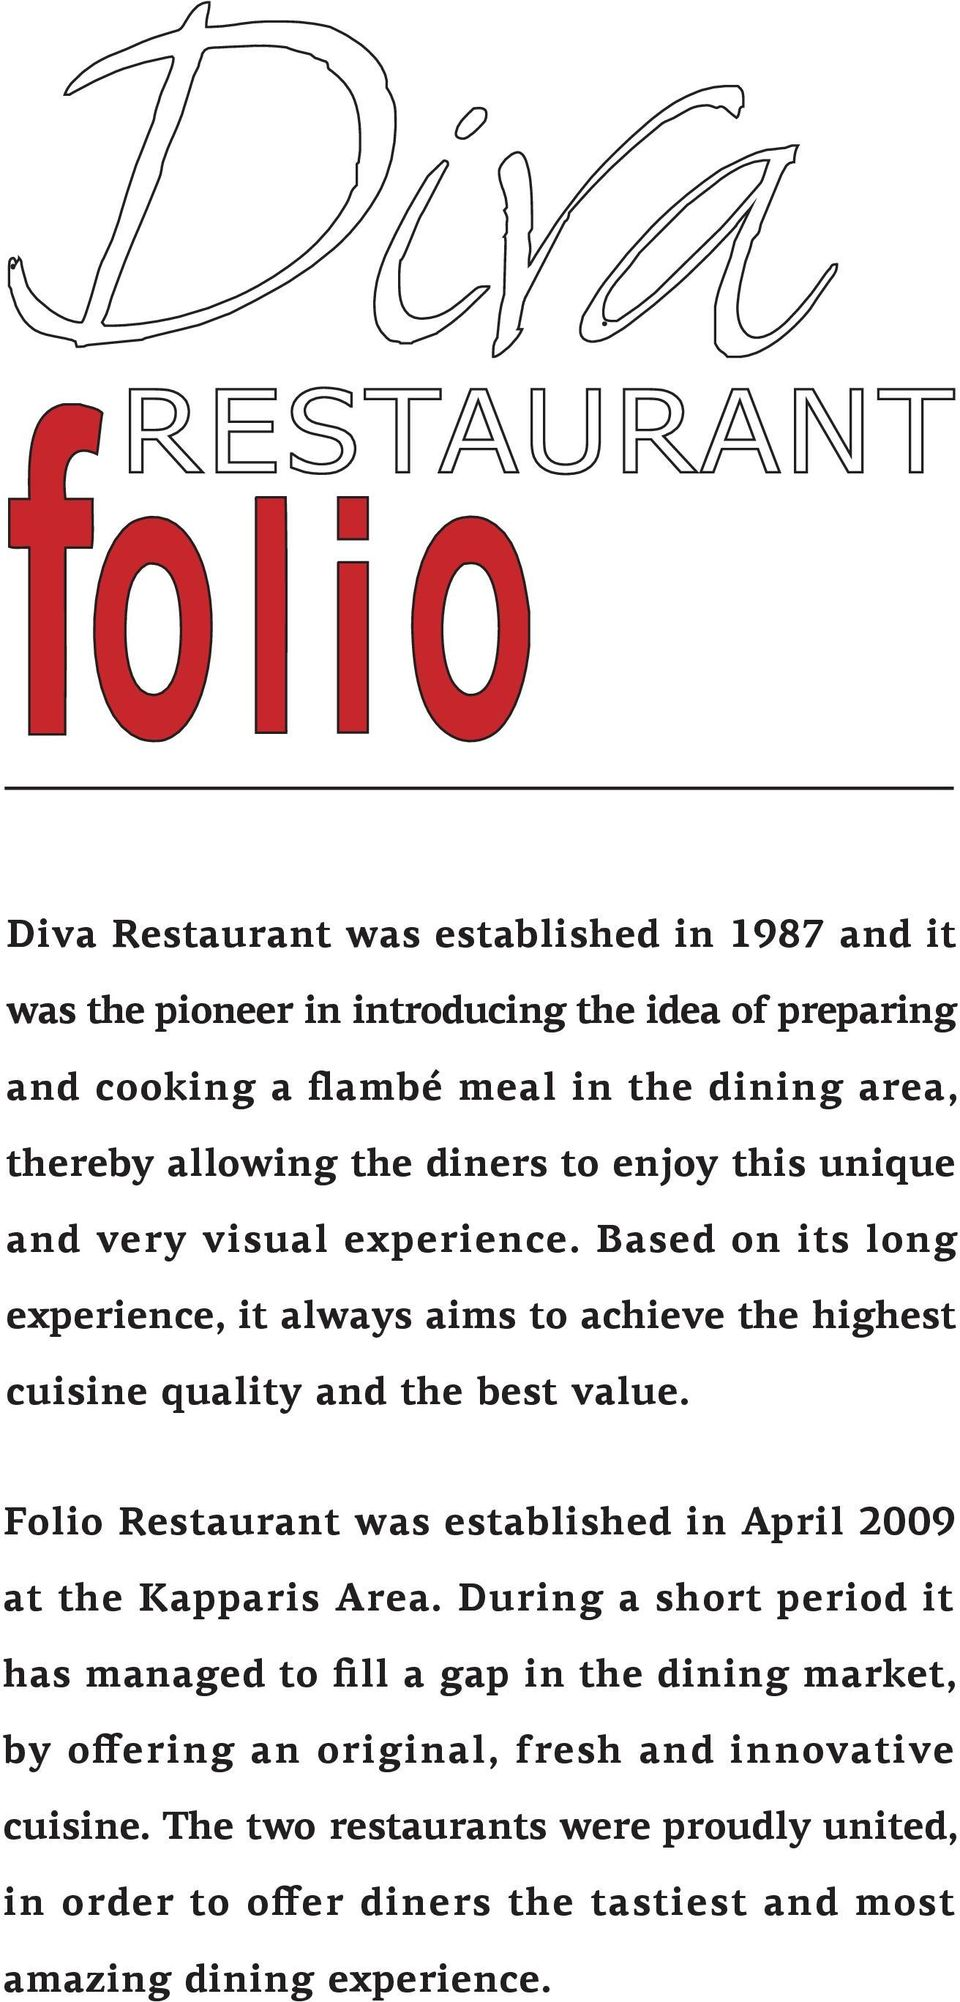 Based on its long experience, it always aims to achieve the highest cuisine quality and the best value.